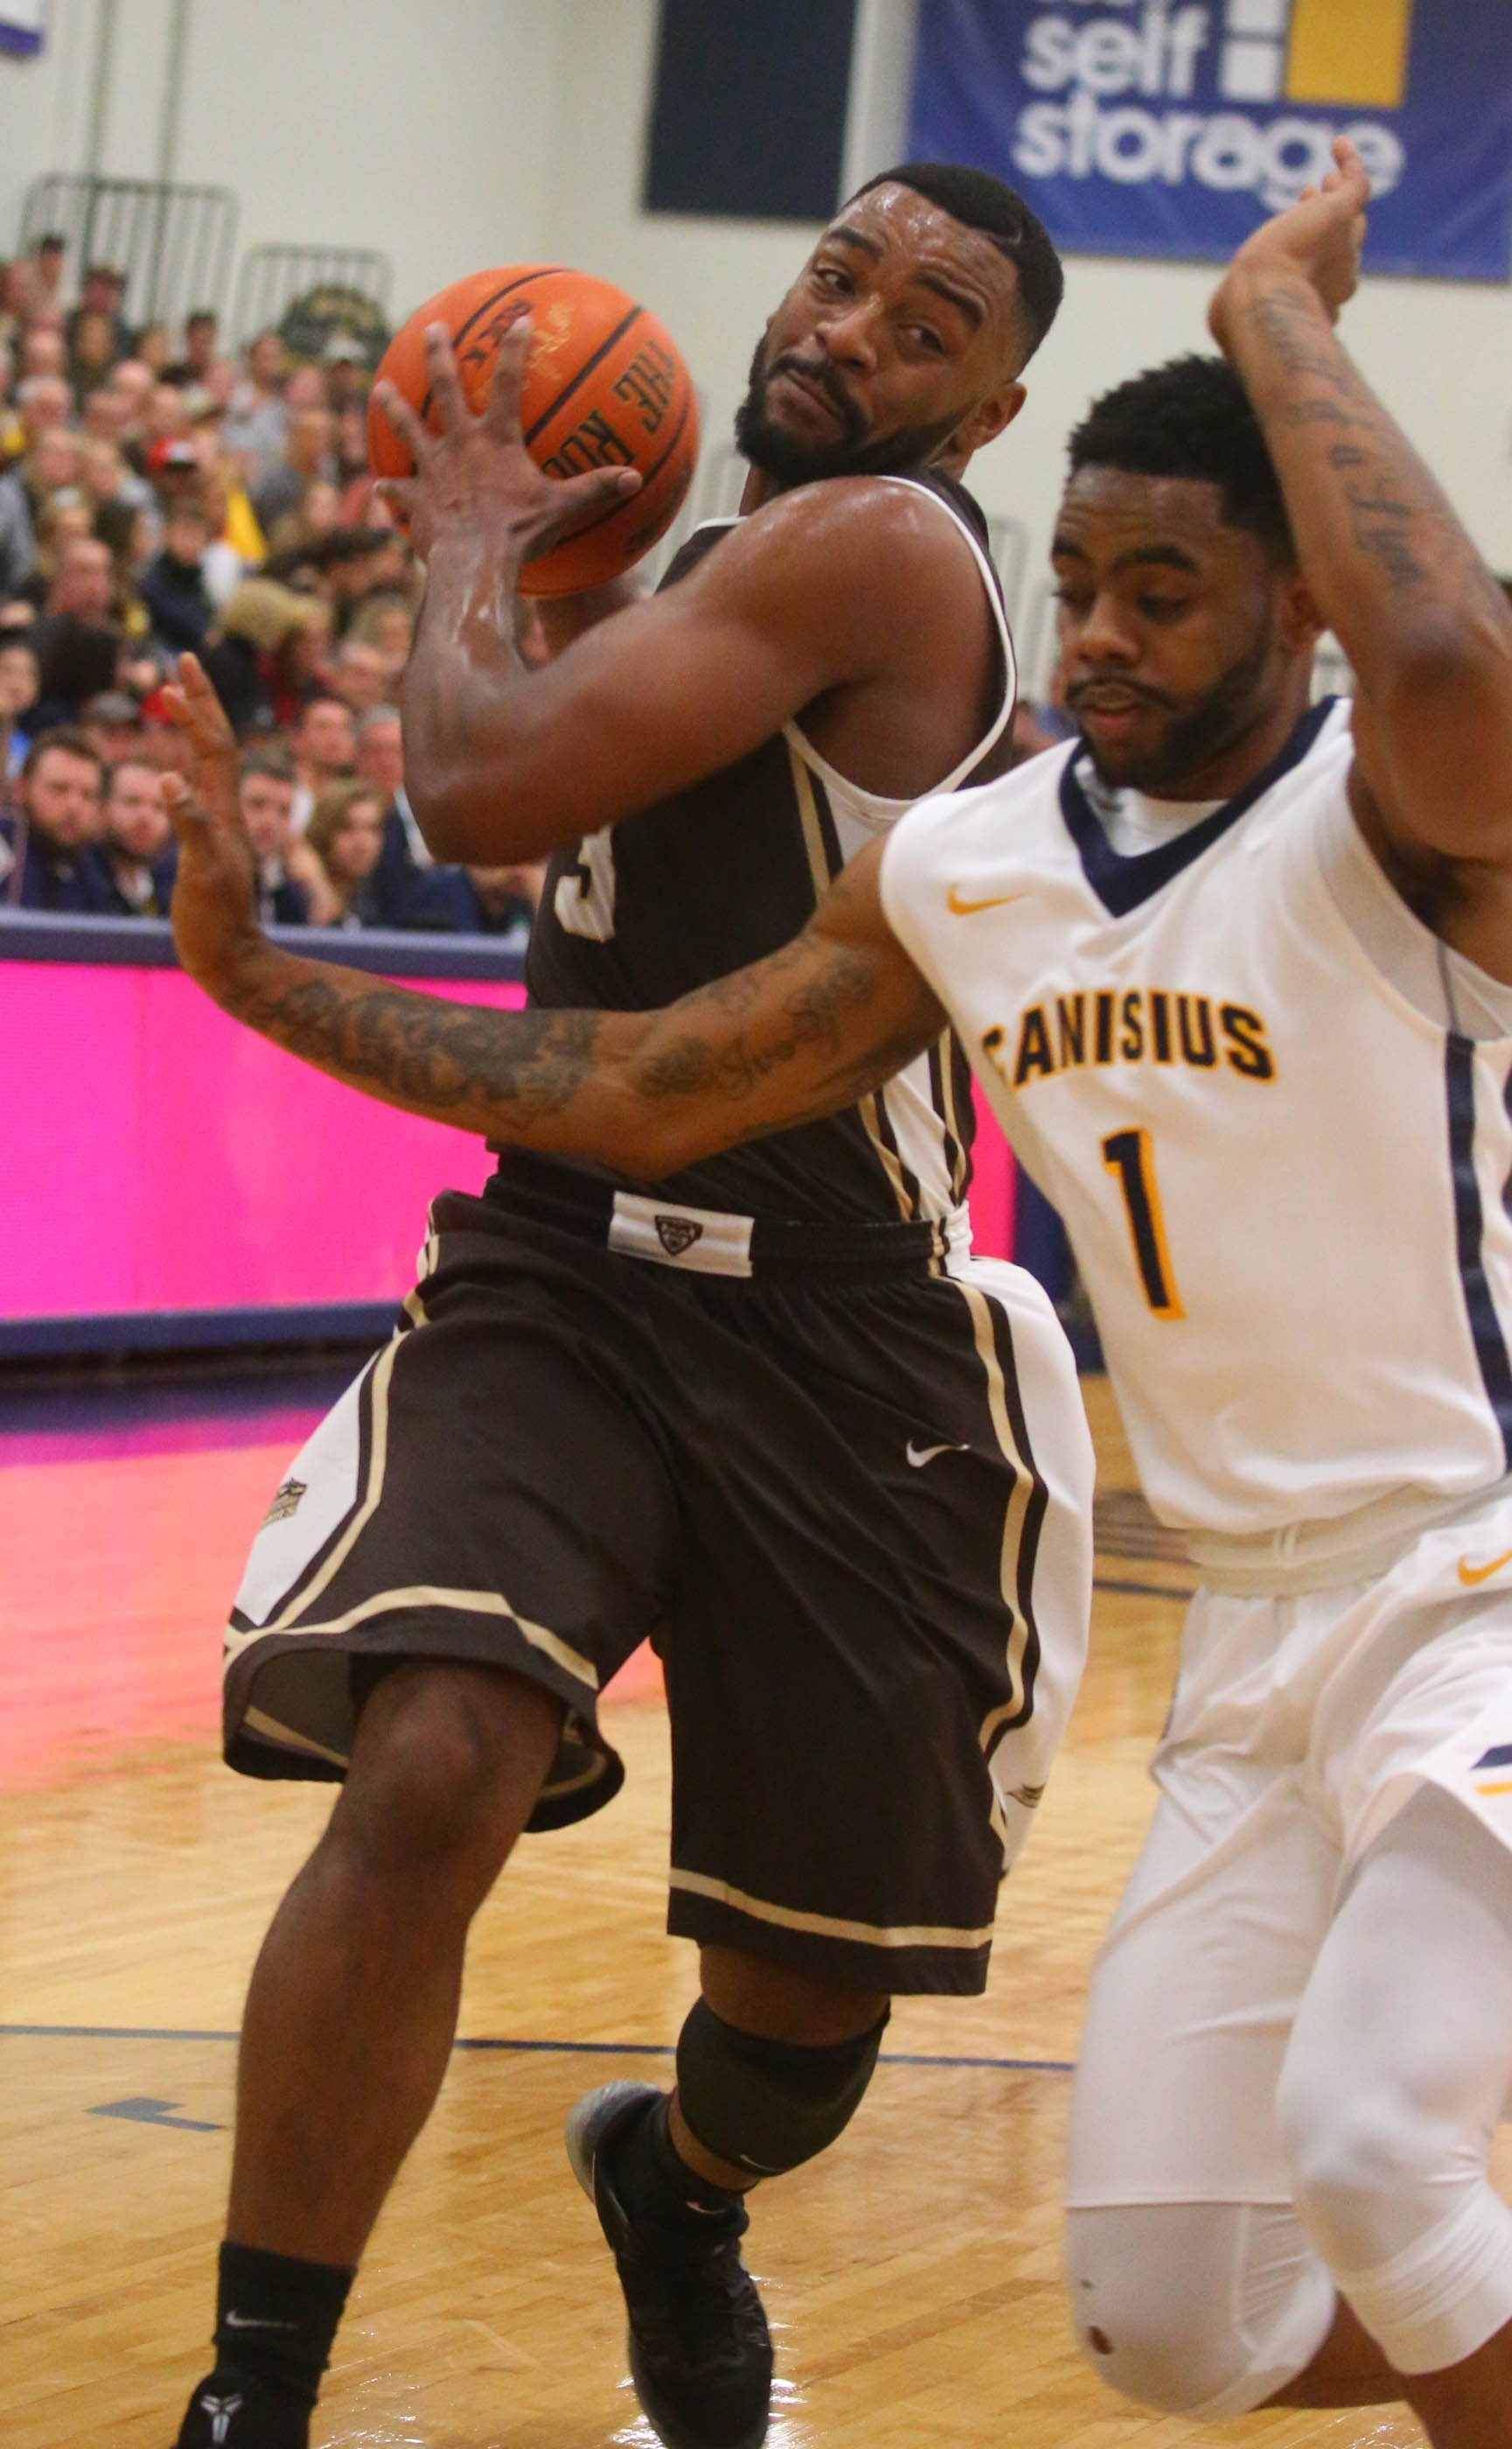 St. Bonaventure's Marcus Posley (3) drives in and around Canisius defender Malcolm McMillan (1) in first half of men's college basketball at Koessler Center, in Buffalo, N.Y., on Tuesday,  Nov. 24, 2015.Canisius 38, St. Bonaventure 41, at the half.  (John Hickey/Buffalo News)